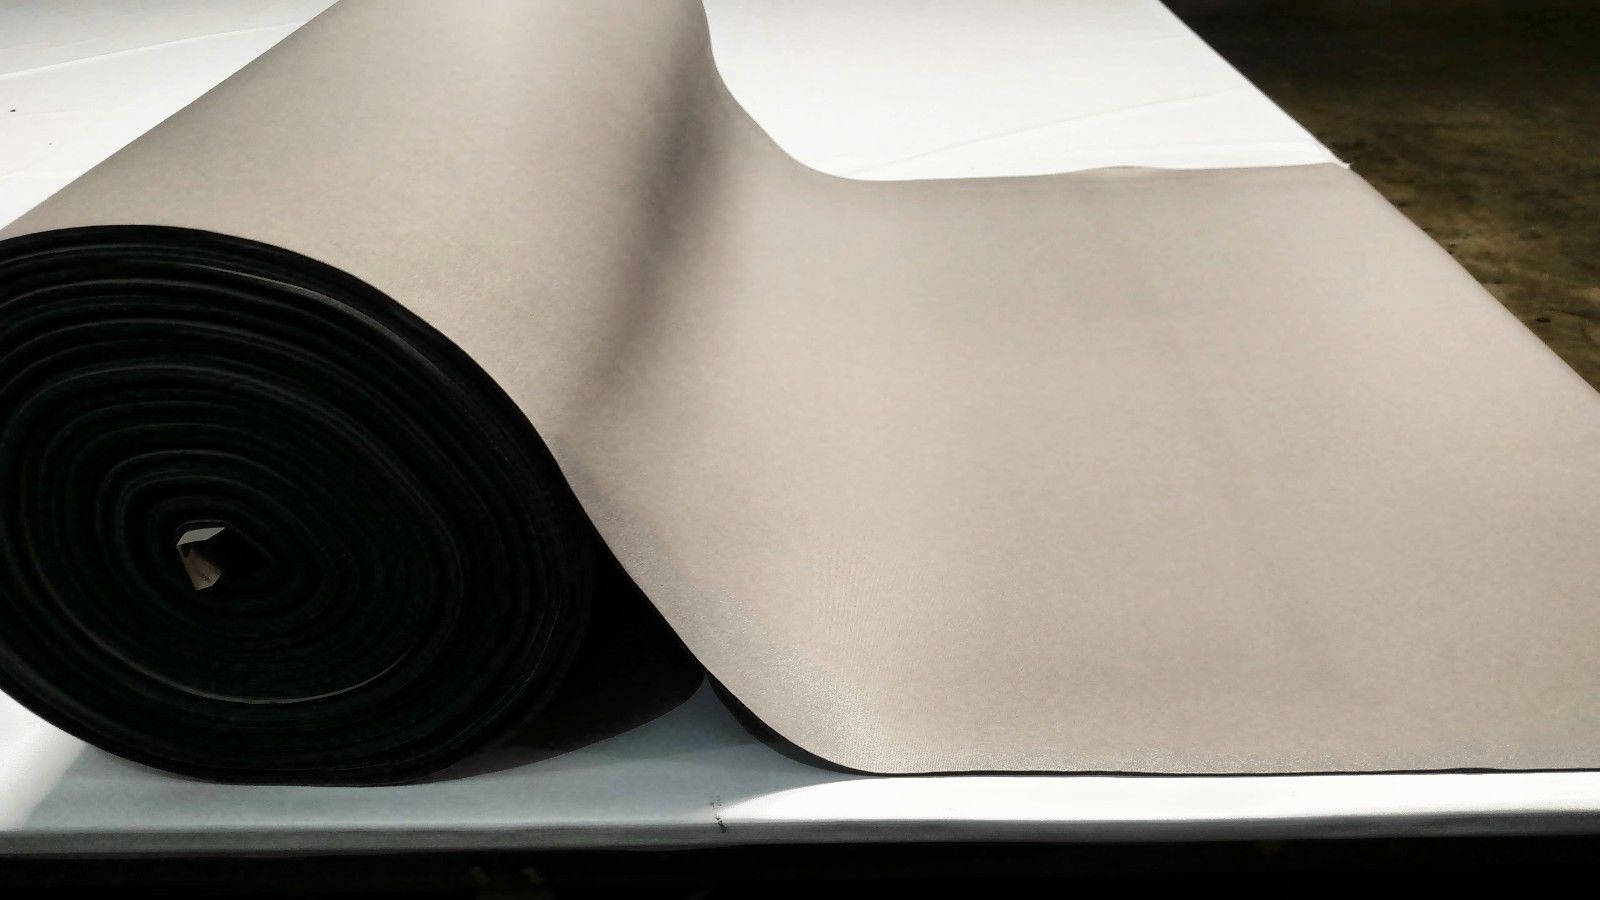 Sand Upholstery Auto Pro Headliner Fabric 3/16 Foam Backing